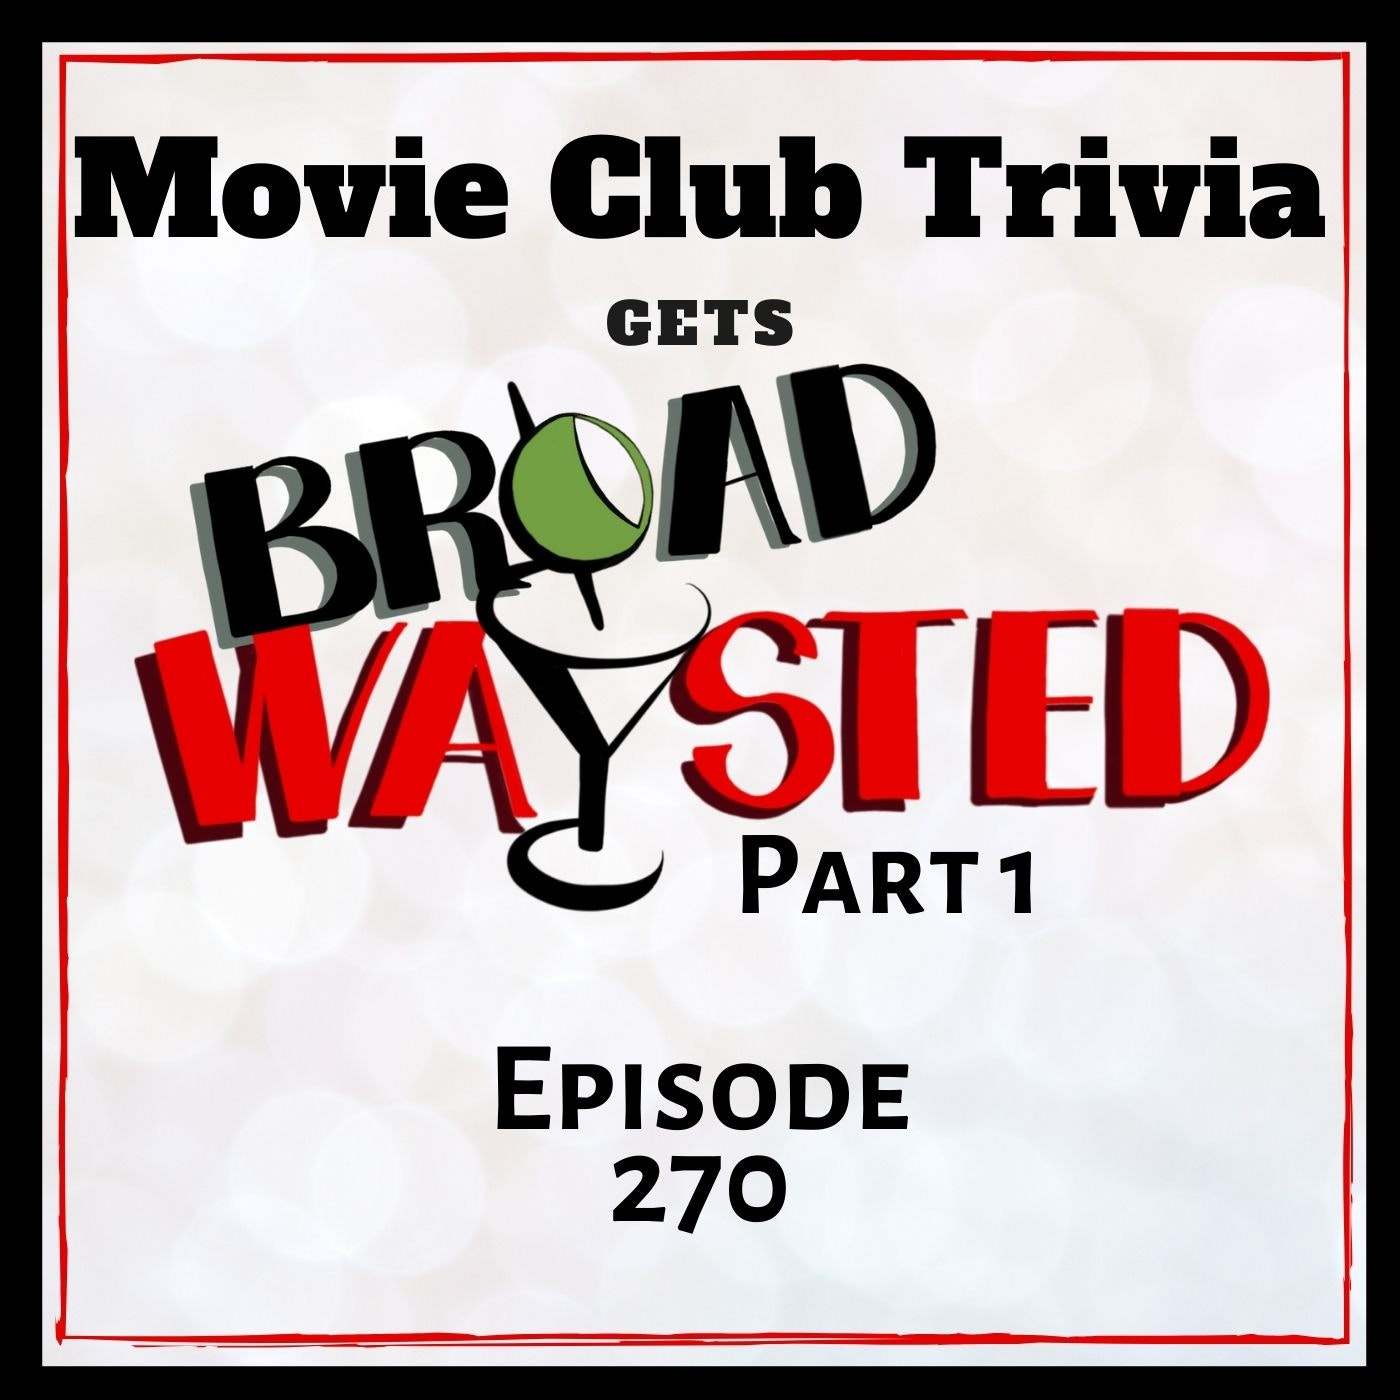 Episode 270: Movie Club Trivia gets Broadwaysted, Part 1!